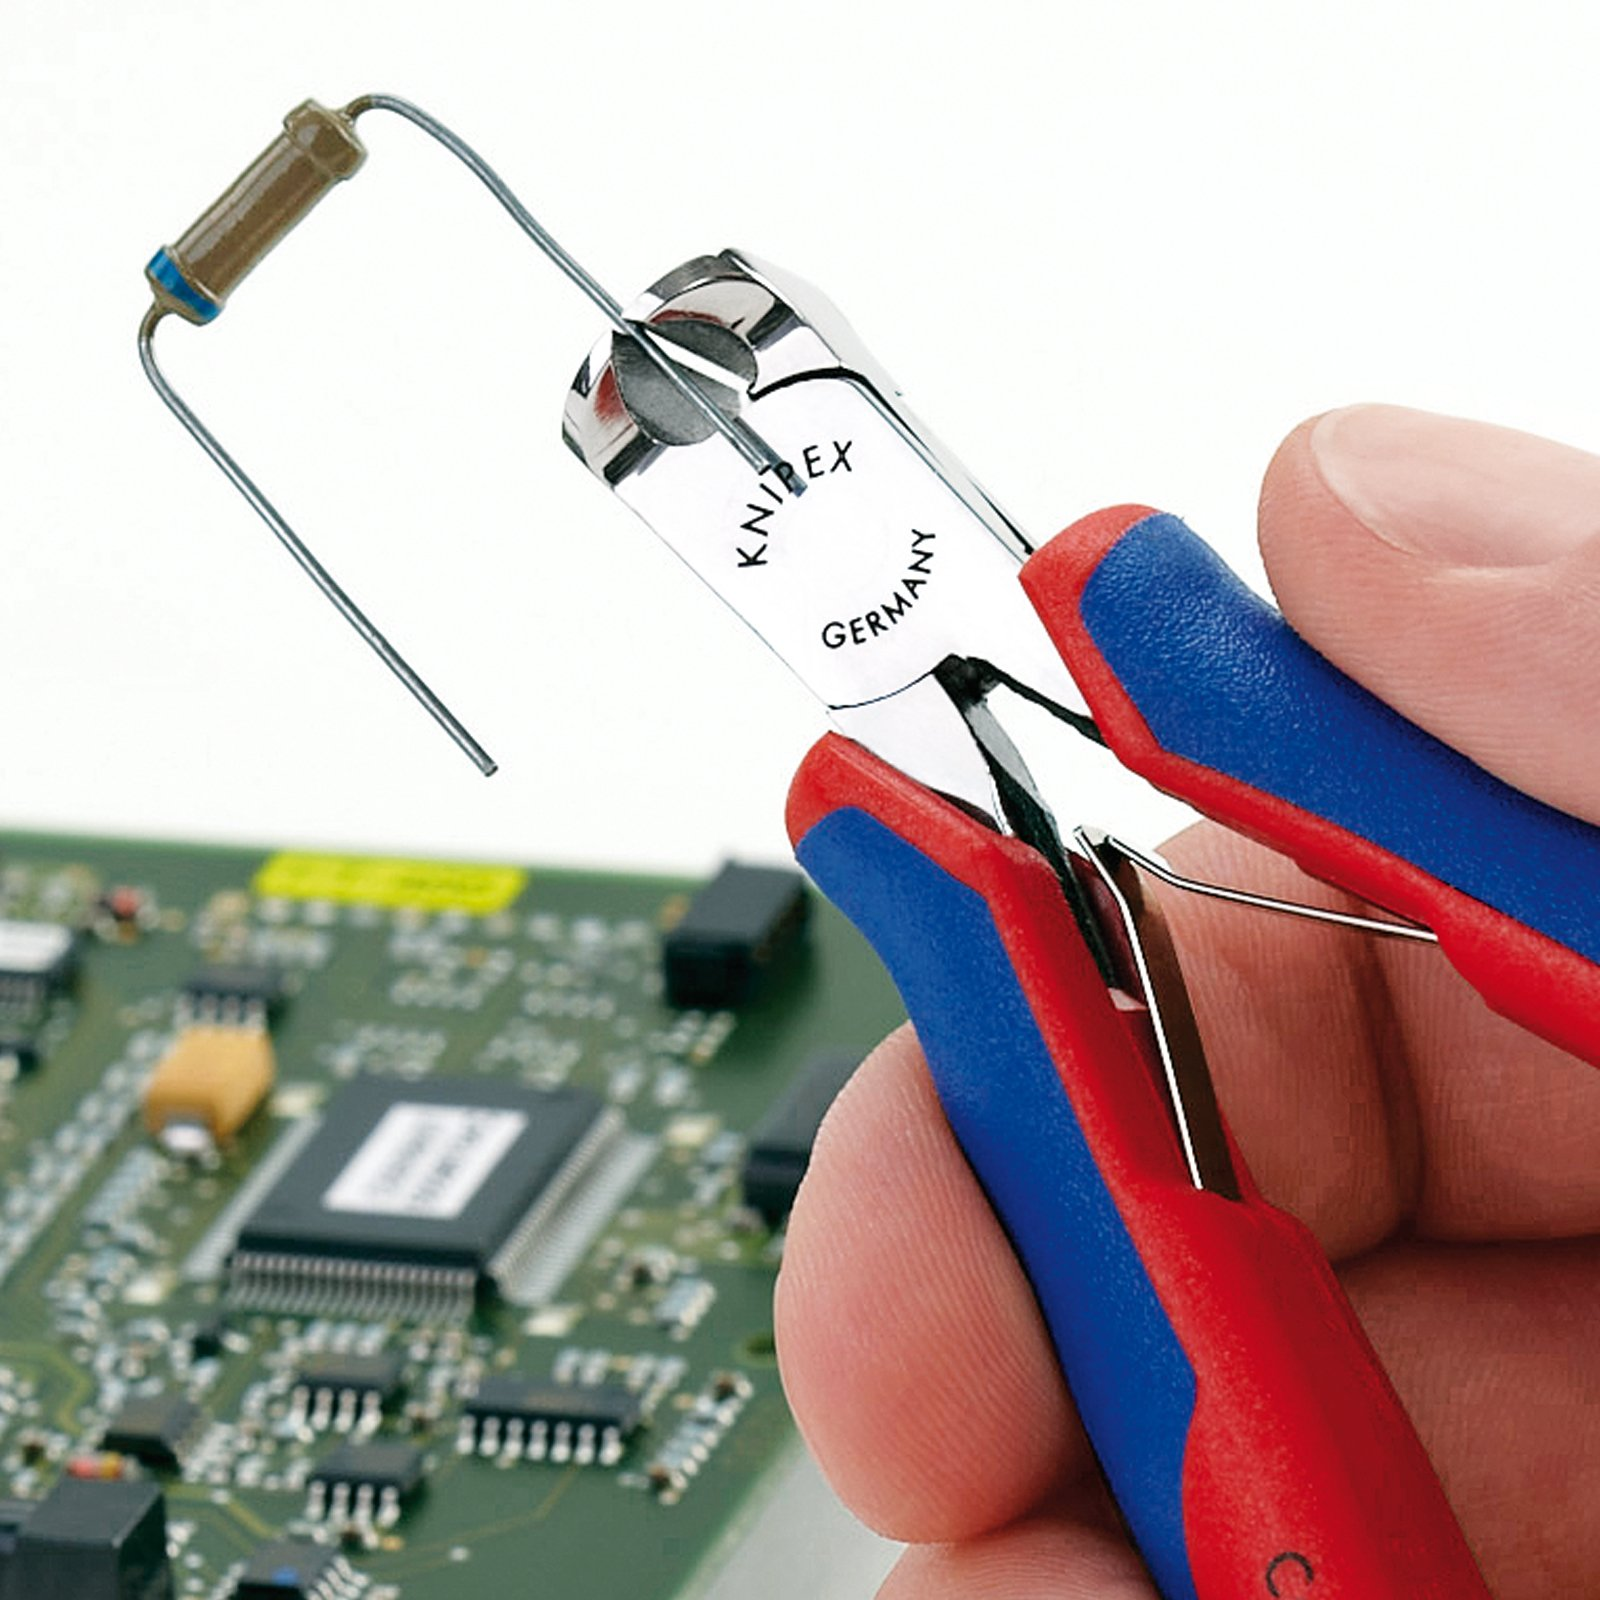 Knipex 64 02 115 Electronics End Cutting Nippers 4,53'' with soft handle by KNIPEX Tools (Image #4)